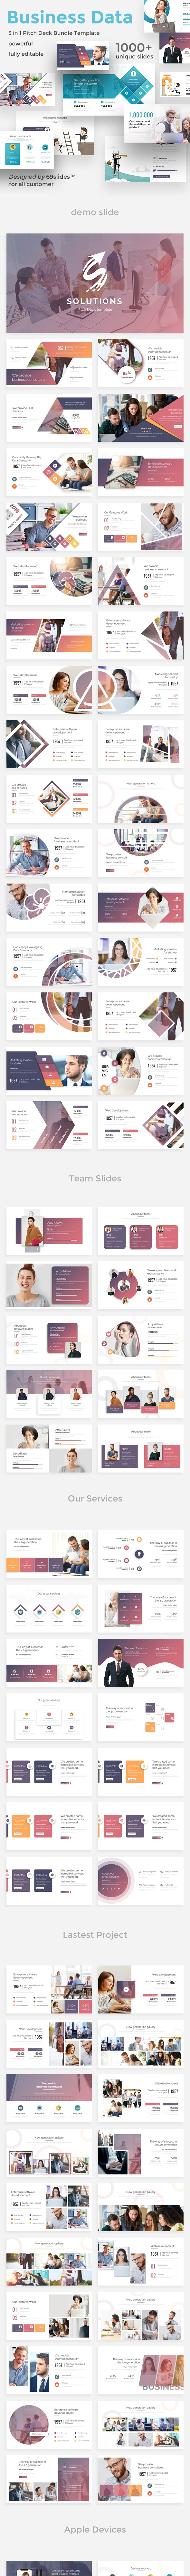 Business Data 3 in 1 Pitch Deck Bundle Powerpoint Template